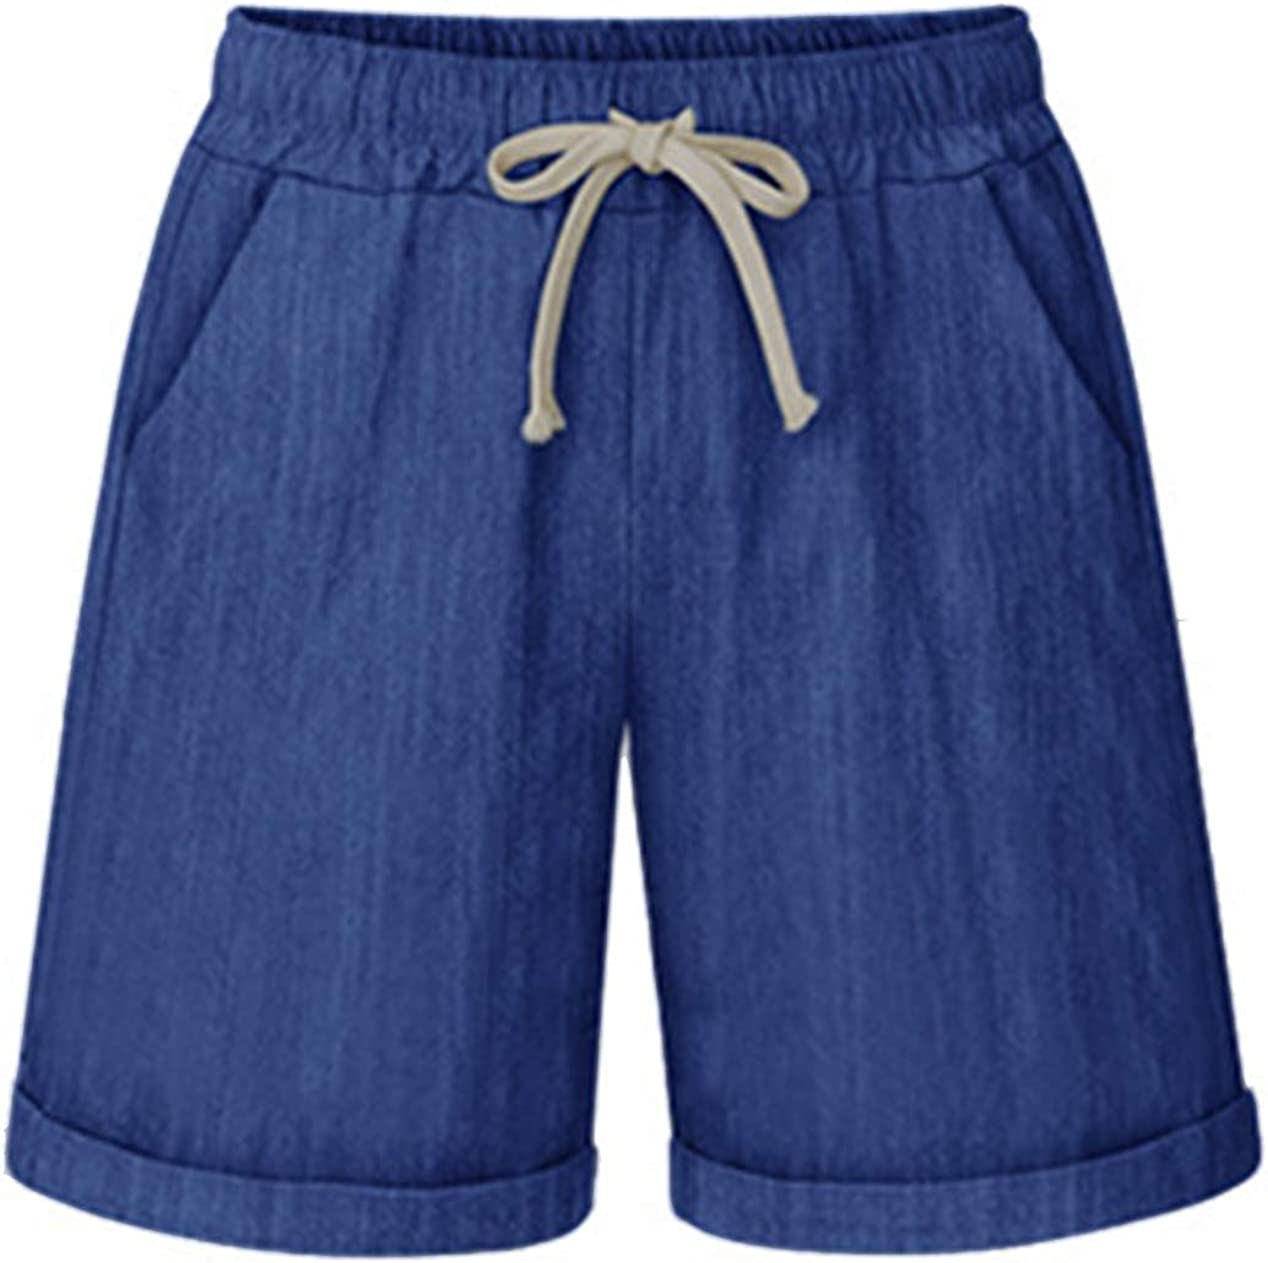 Vcansion Women's Casual Cotton Elastic Waist Above Knee Loose Comfy Beach Shorts with Drawstring